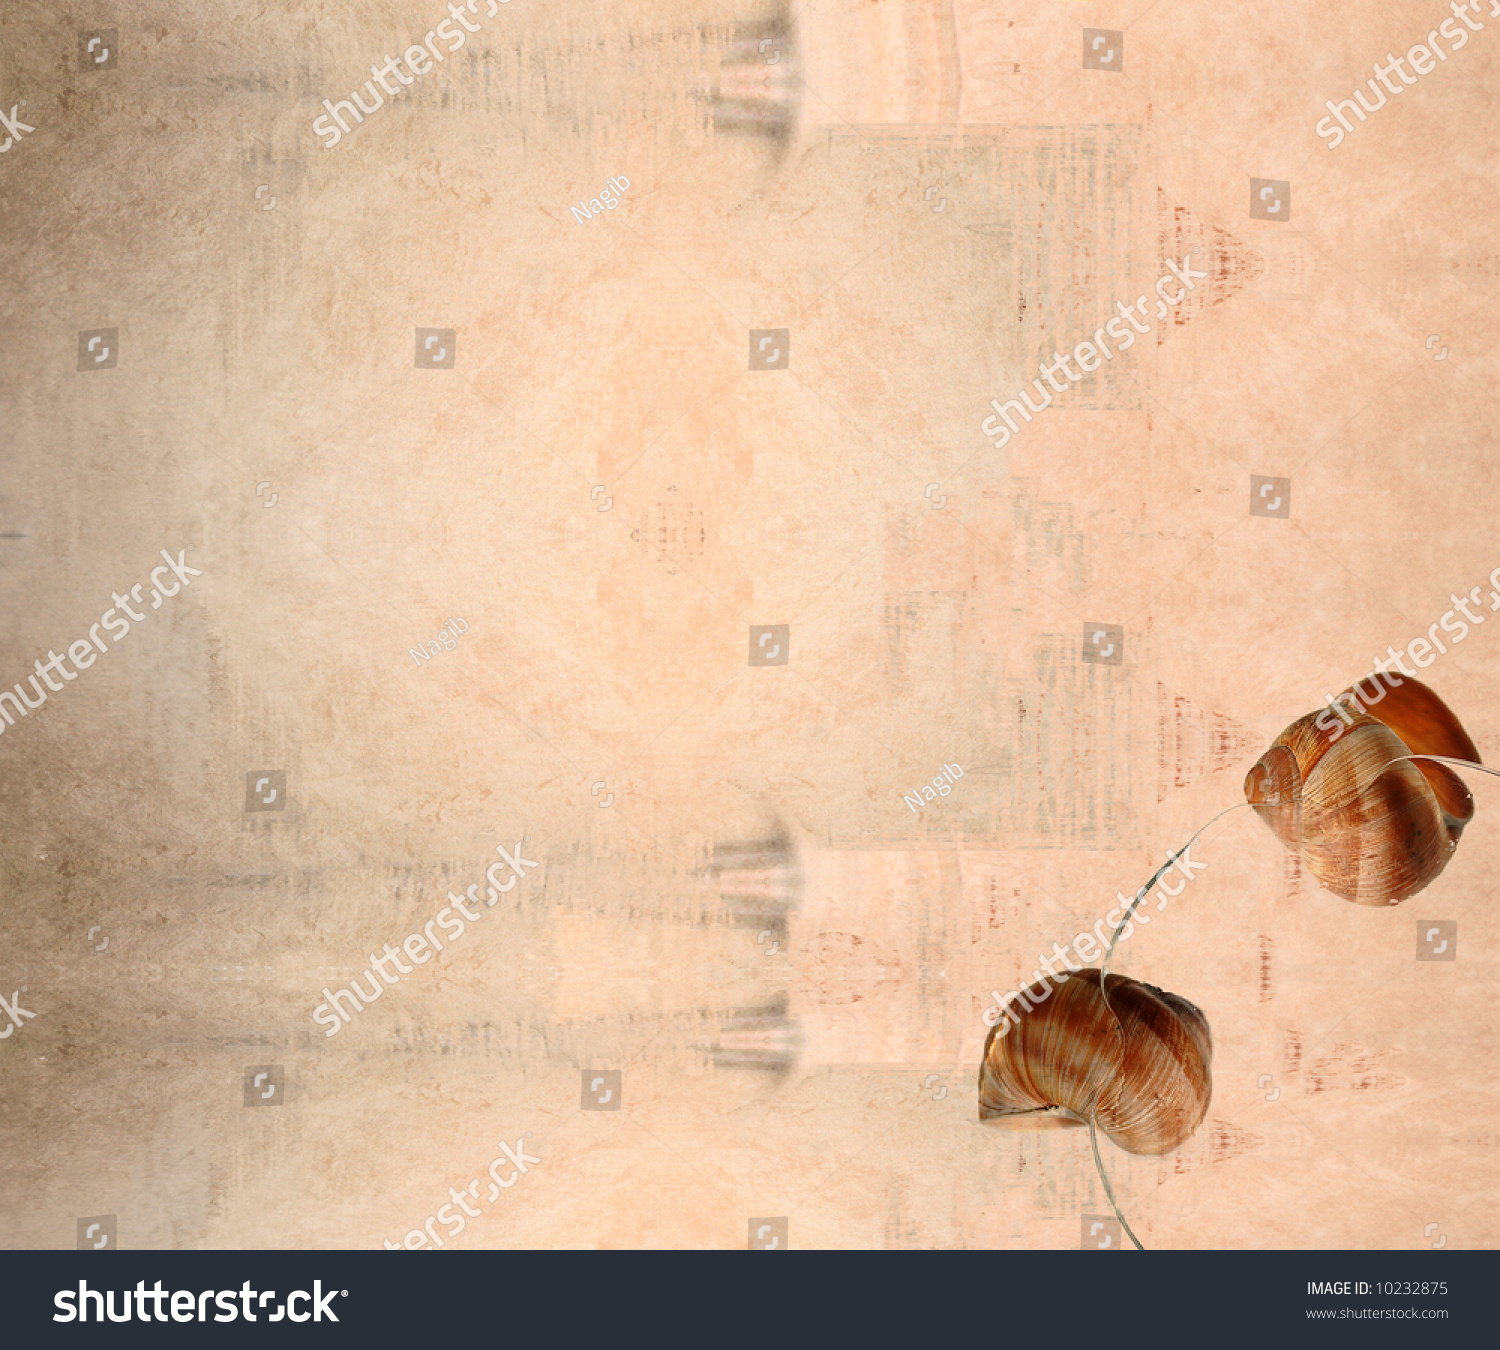 Light Brown Background Image With Interesting Texture ... - photo#37